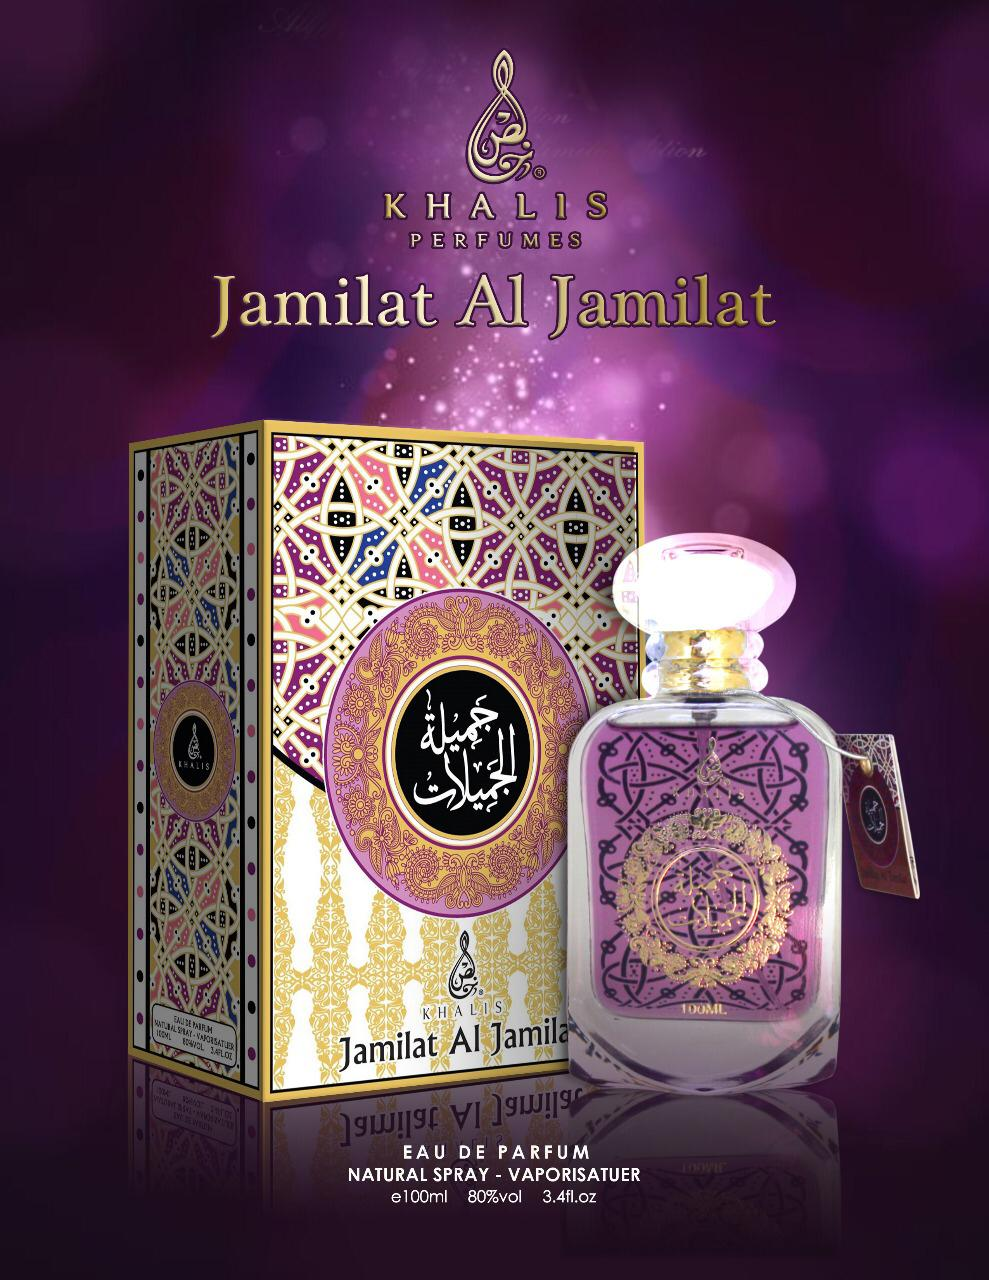 khalis-jamilat-al-jamilat-perfume-for-women-100-ml-edp